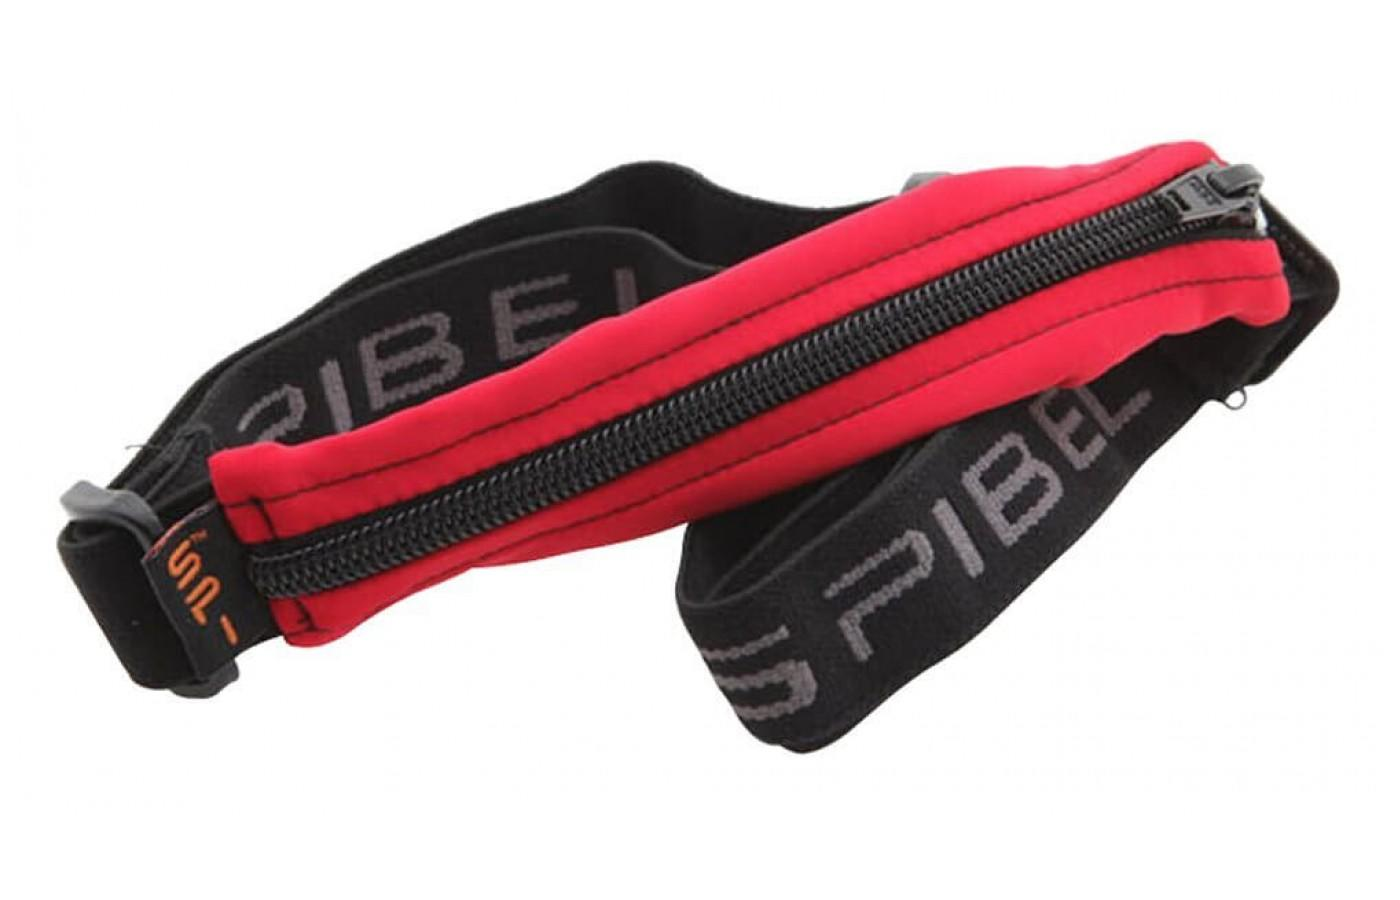 The SPIbelt has a sturdy zipper to keep your items secure